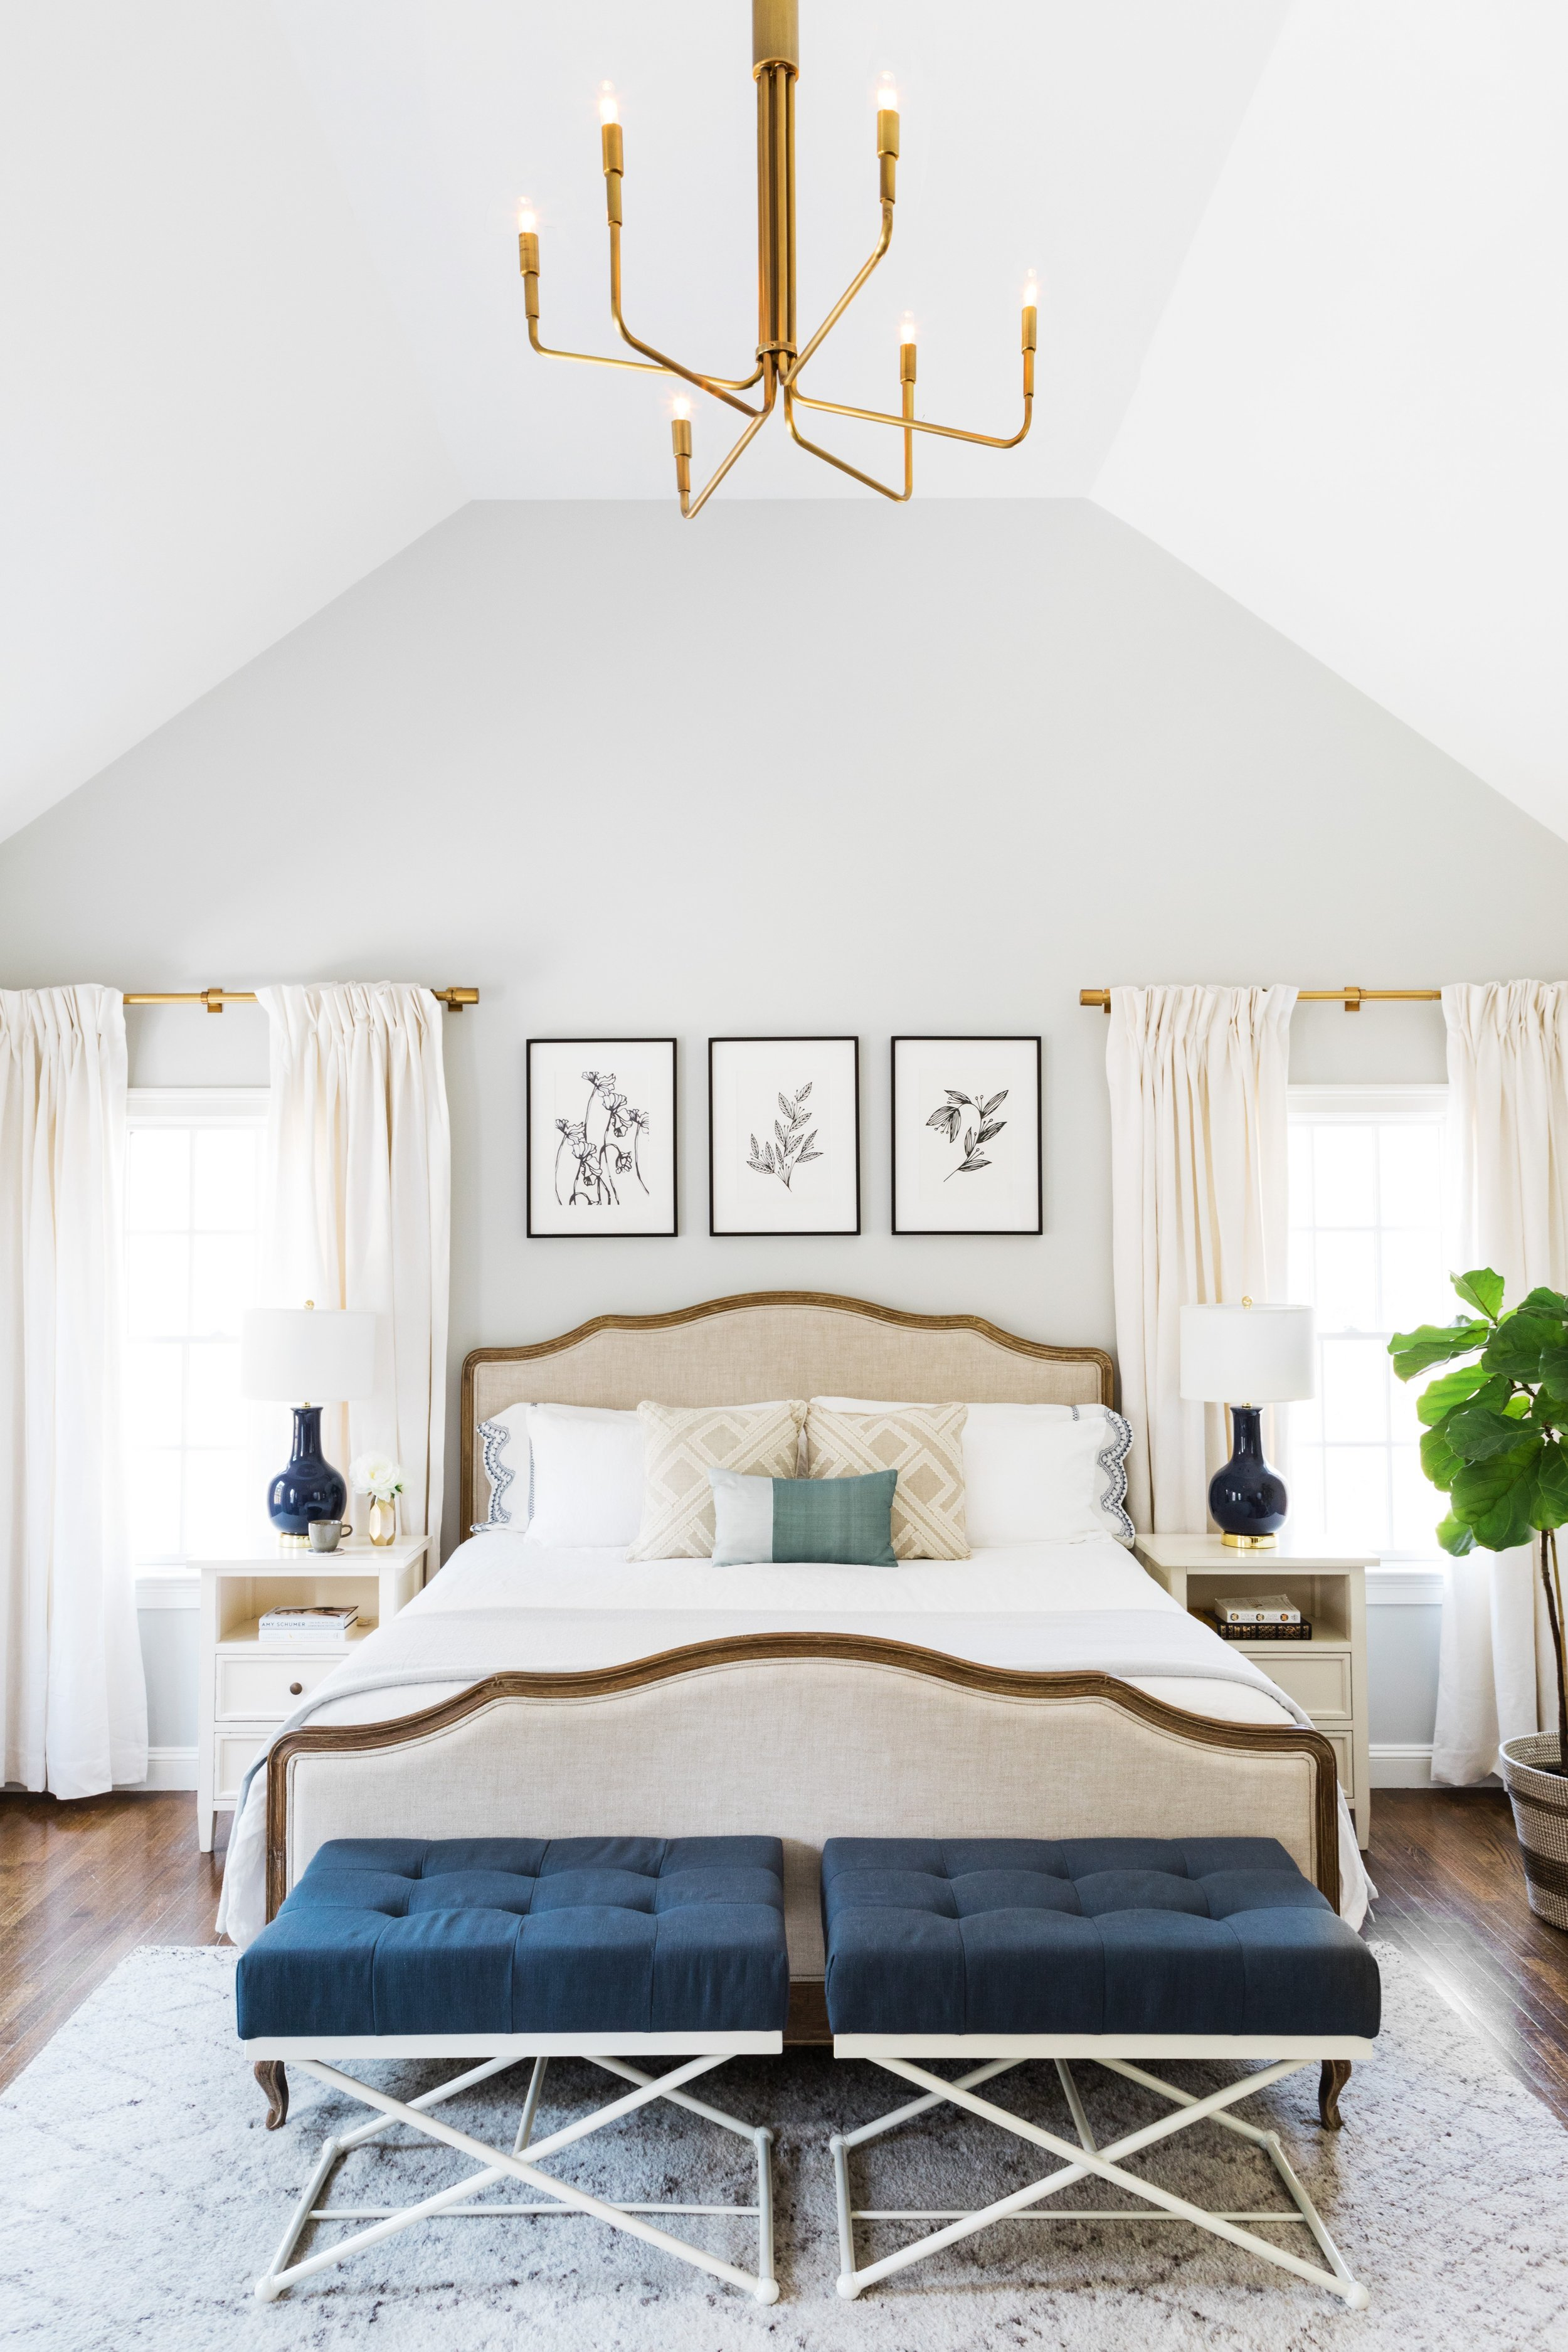 How to decorate around a bed. One option:hang art centered on the wall above the headboard. (Design: Oh, I Design) // traditional bedroom, neutral bedroom, upholstered bed